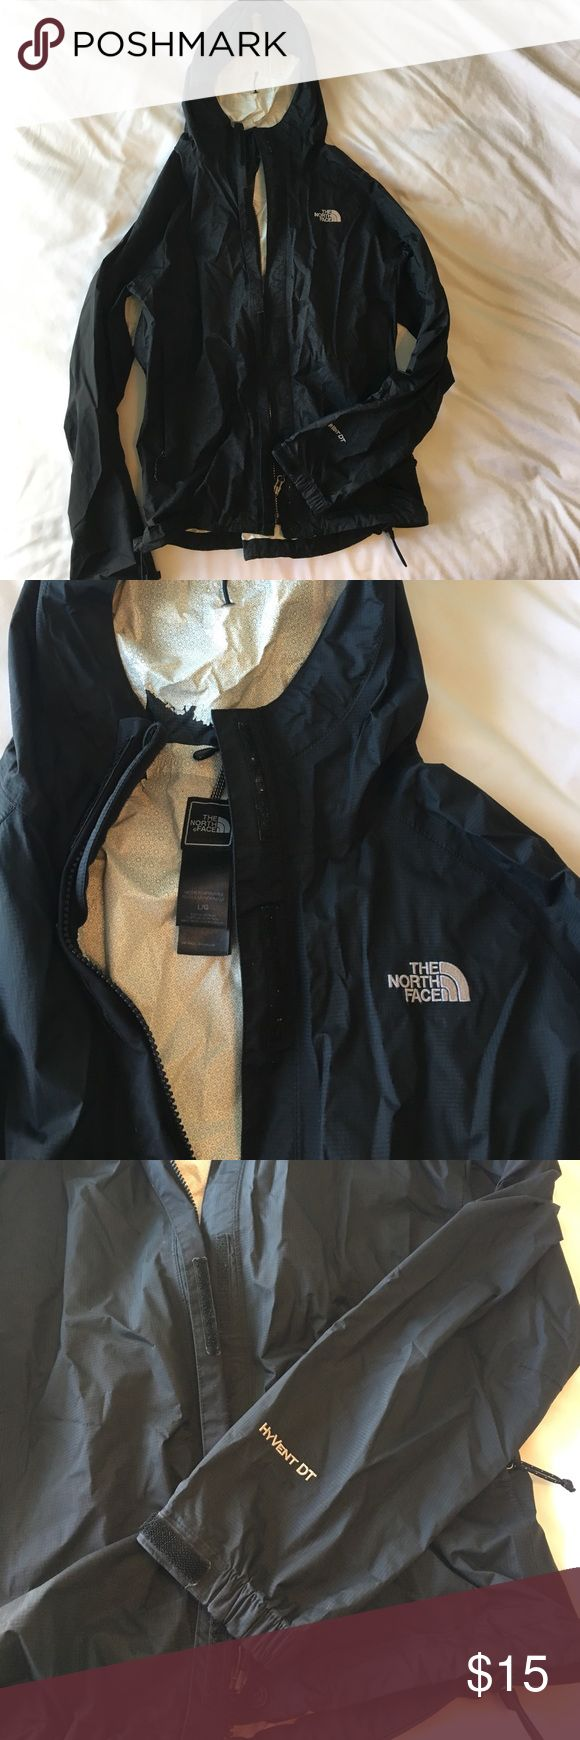 North face rain jacket, size large Black North Face rain jacket. Lots of wear, fair condition. White lining peeling around collar and at the end of sleeves, still water proof. Size large The North Face Jackets & Coats